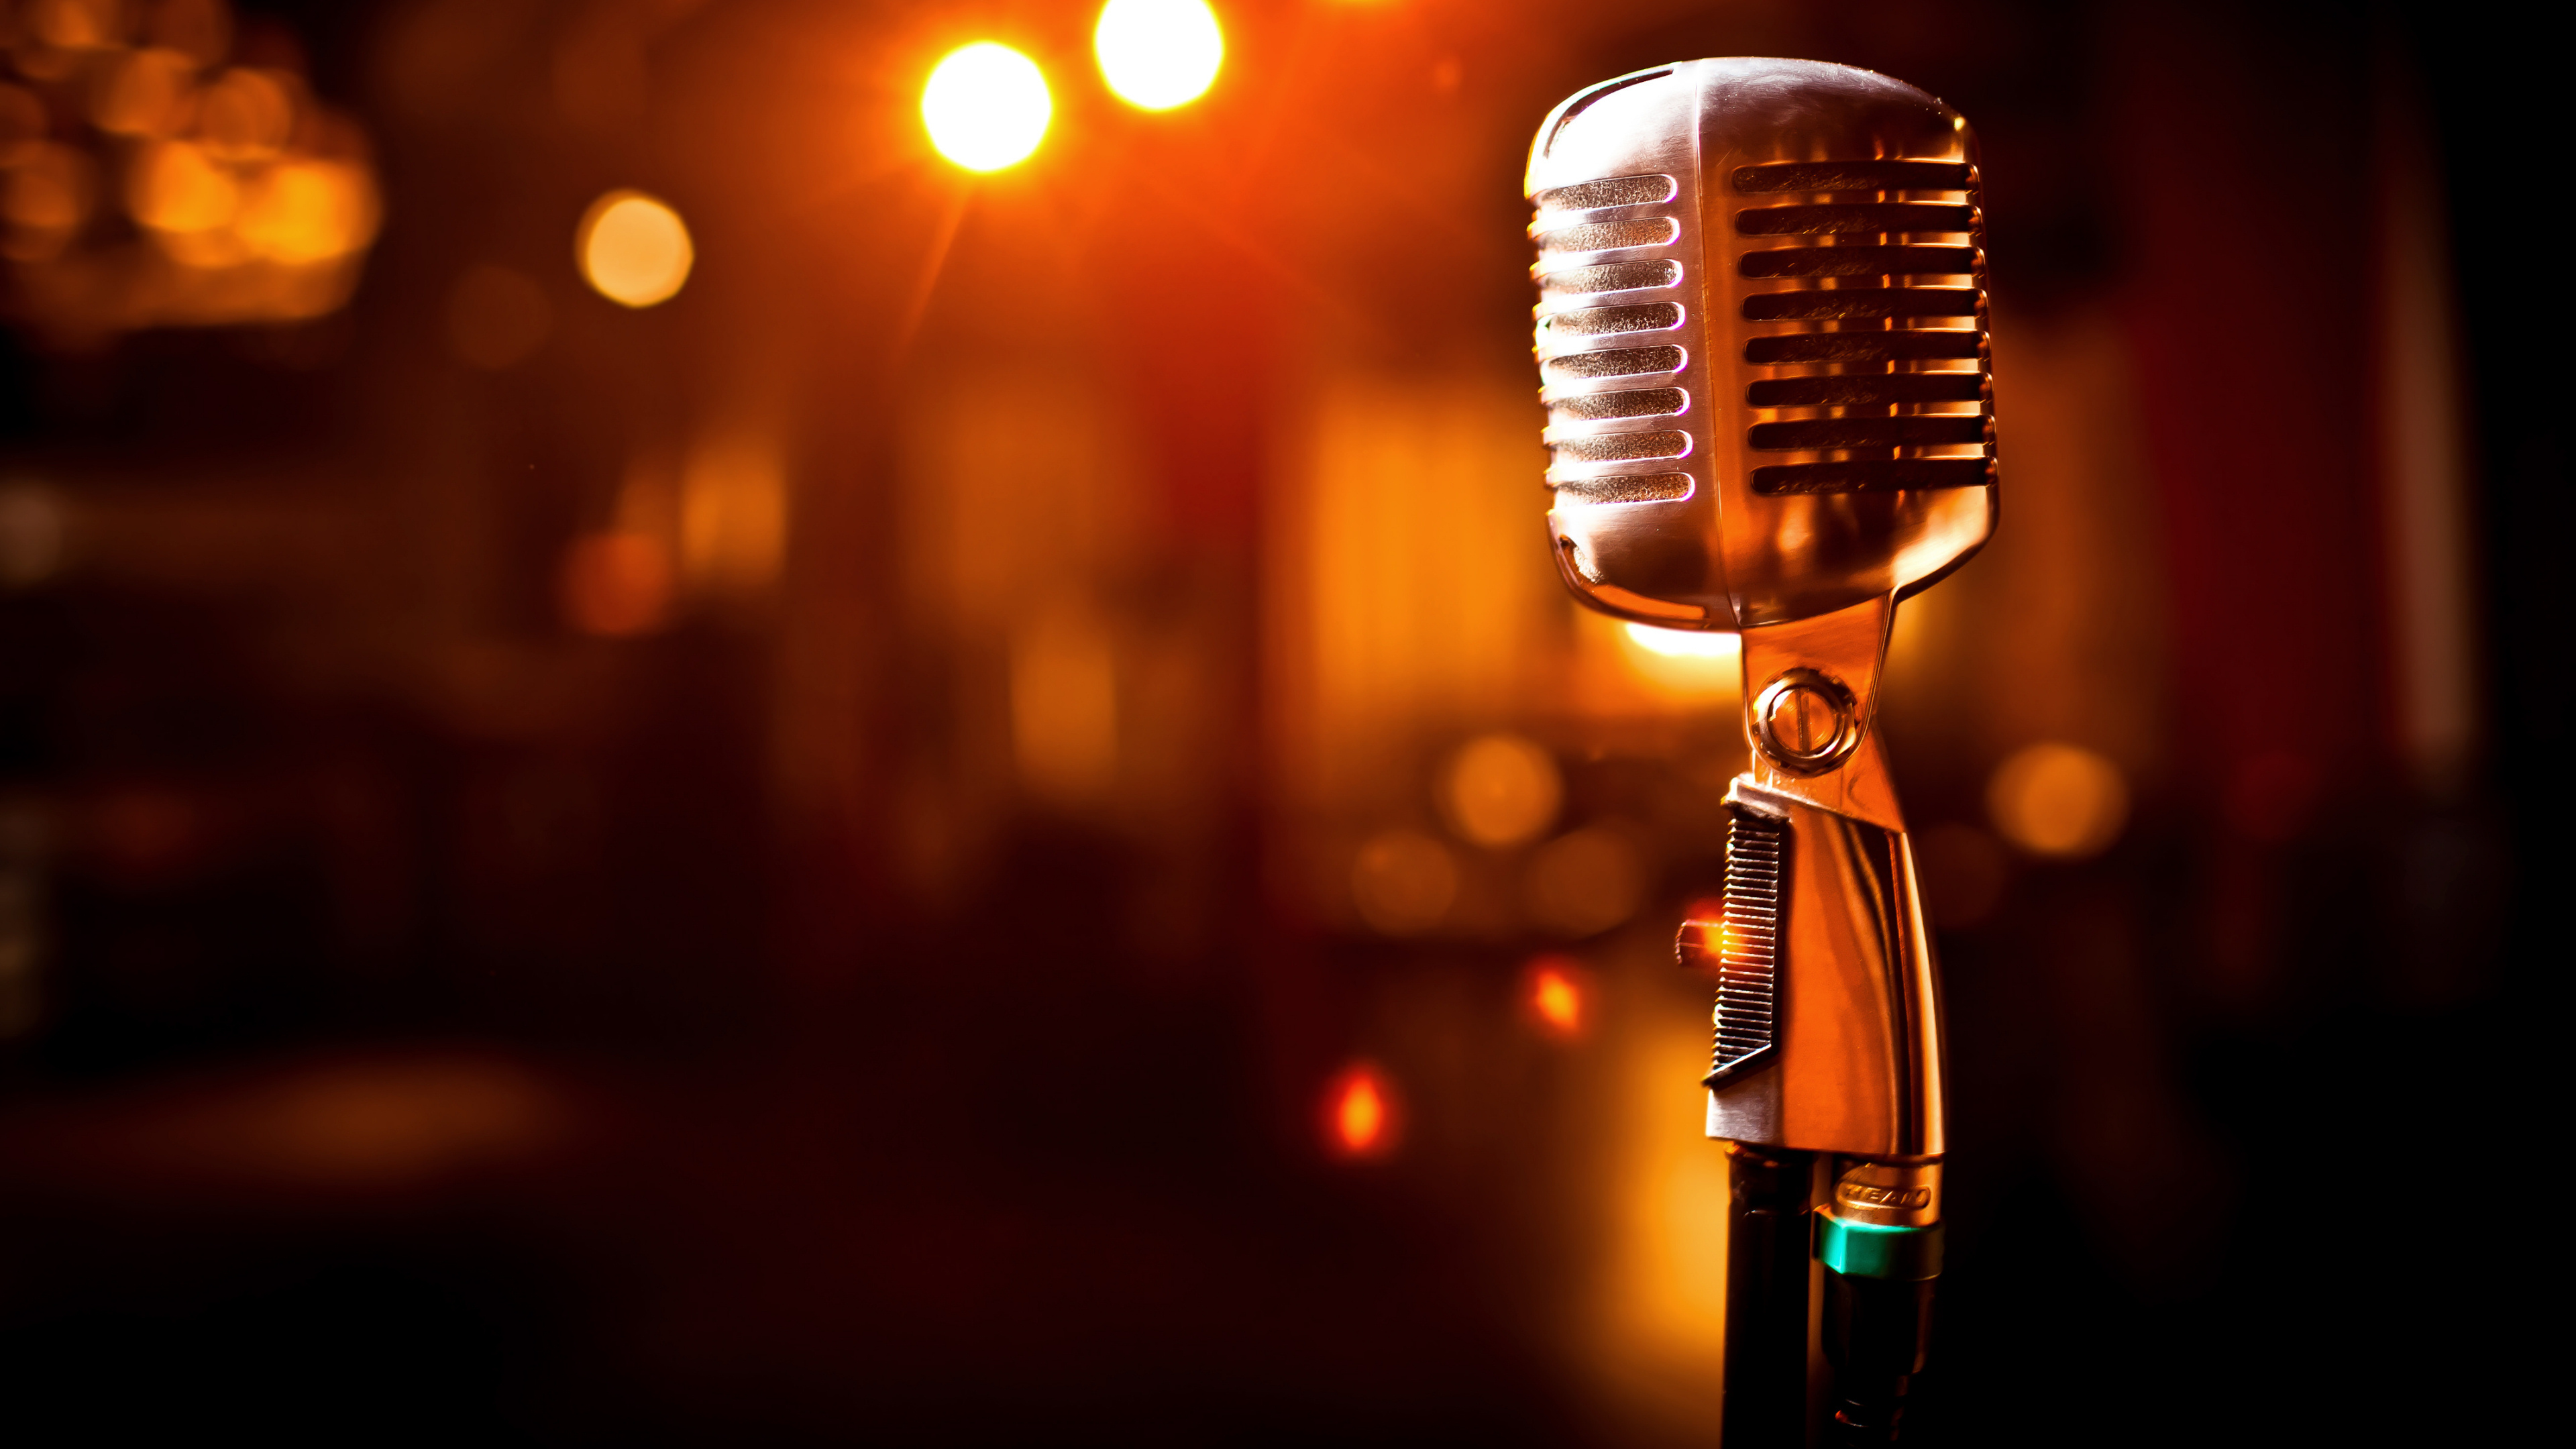 microphone-wallpaper-hd-4337-4575-hd-wallpapers